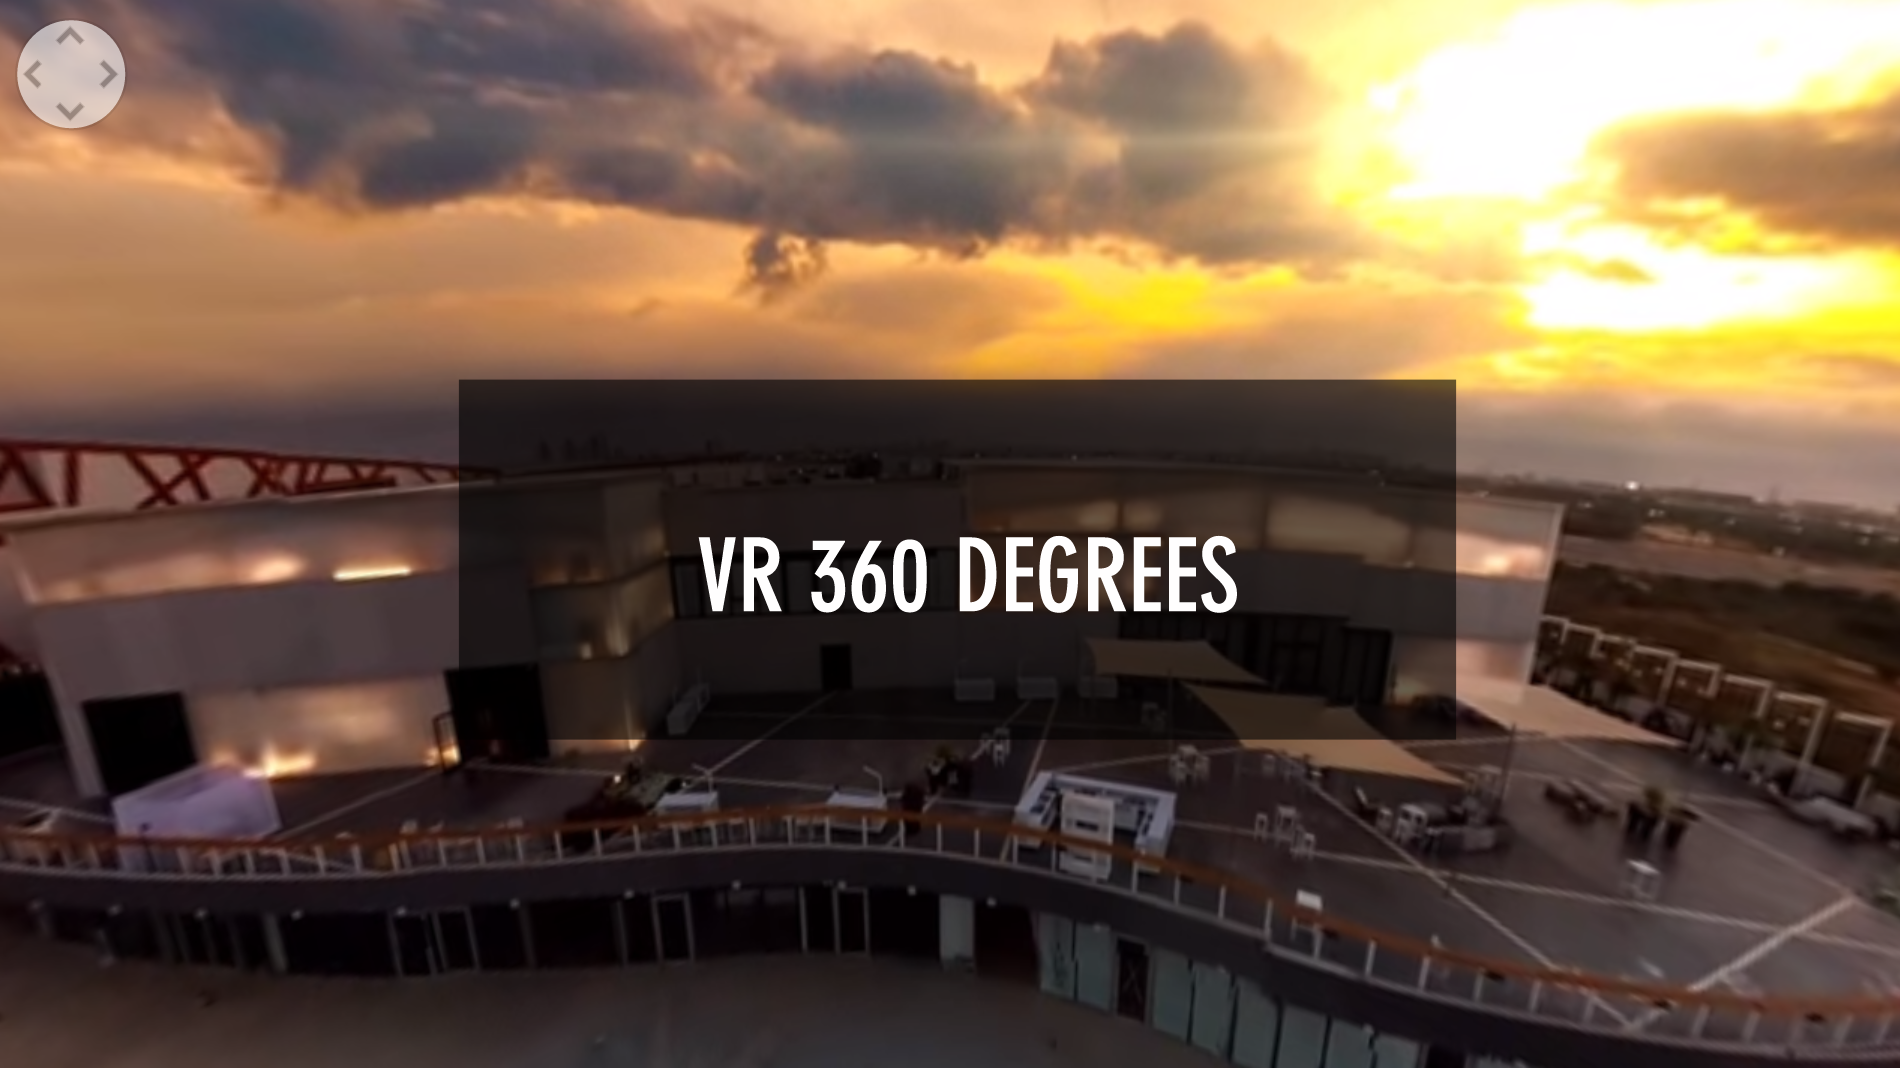 vr 360 degrees - Lago